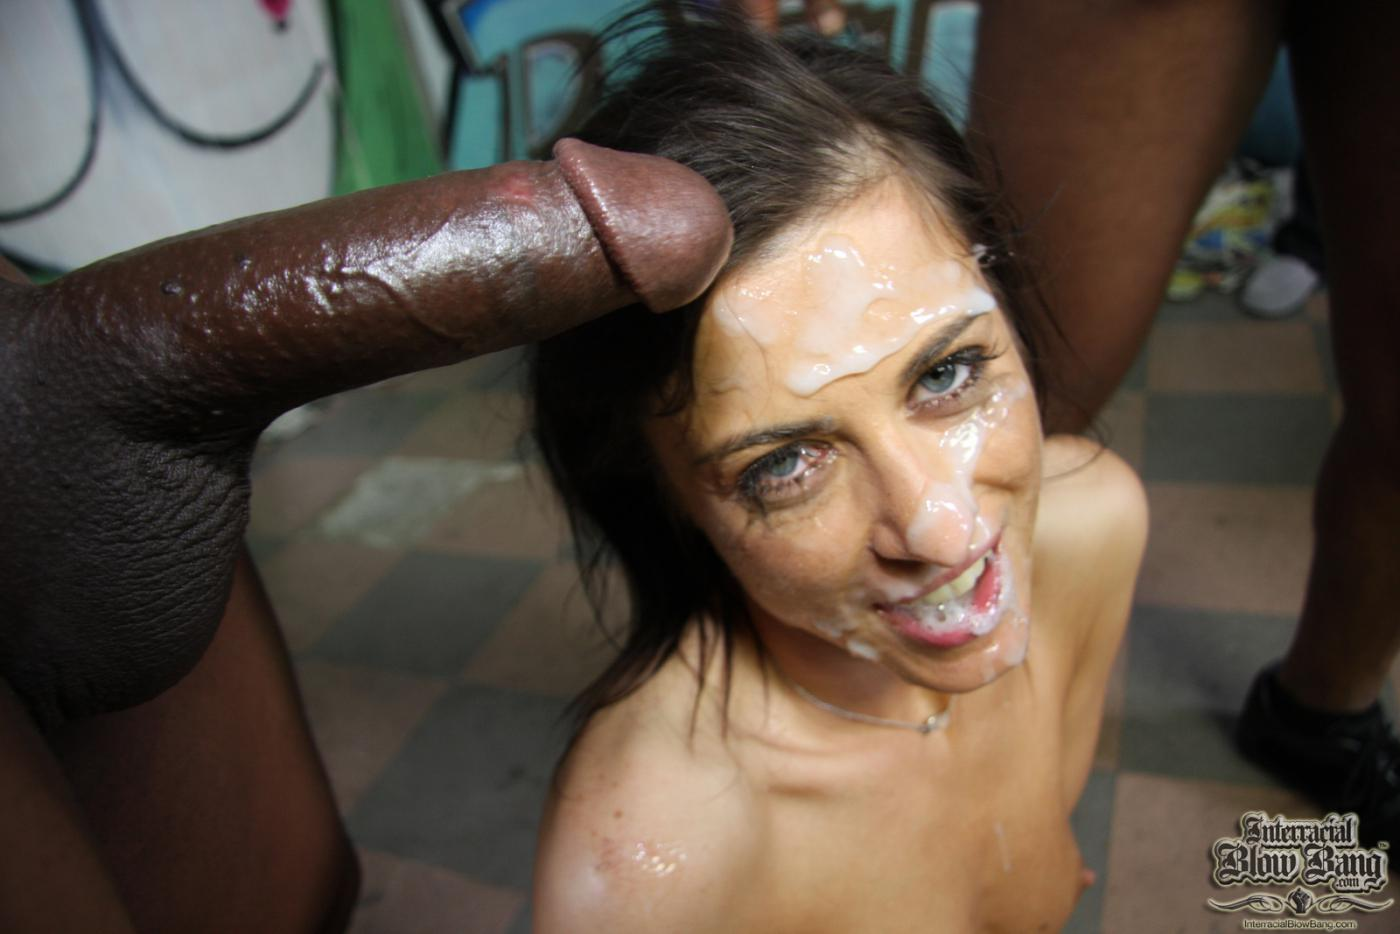 Ggkatie Best, Biggest Facial In The World Giggling Blonde Drowning In Cum Facefuck